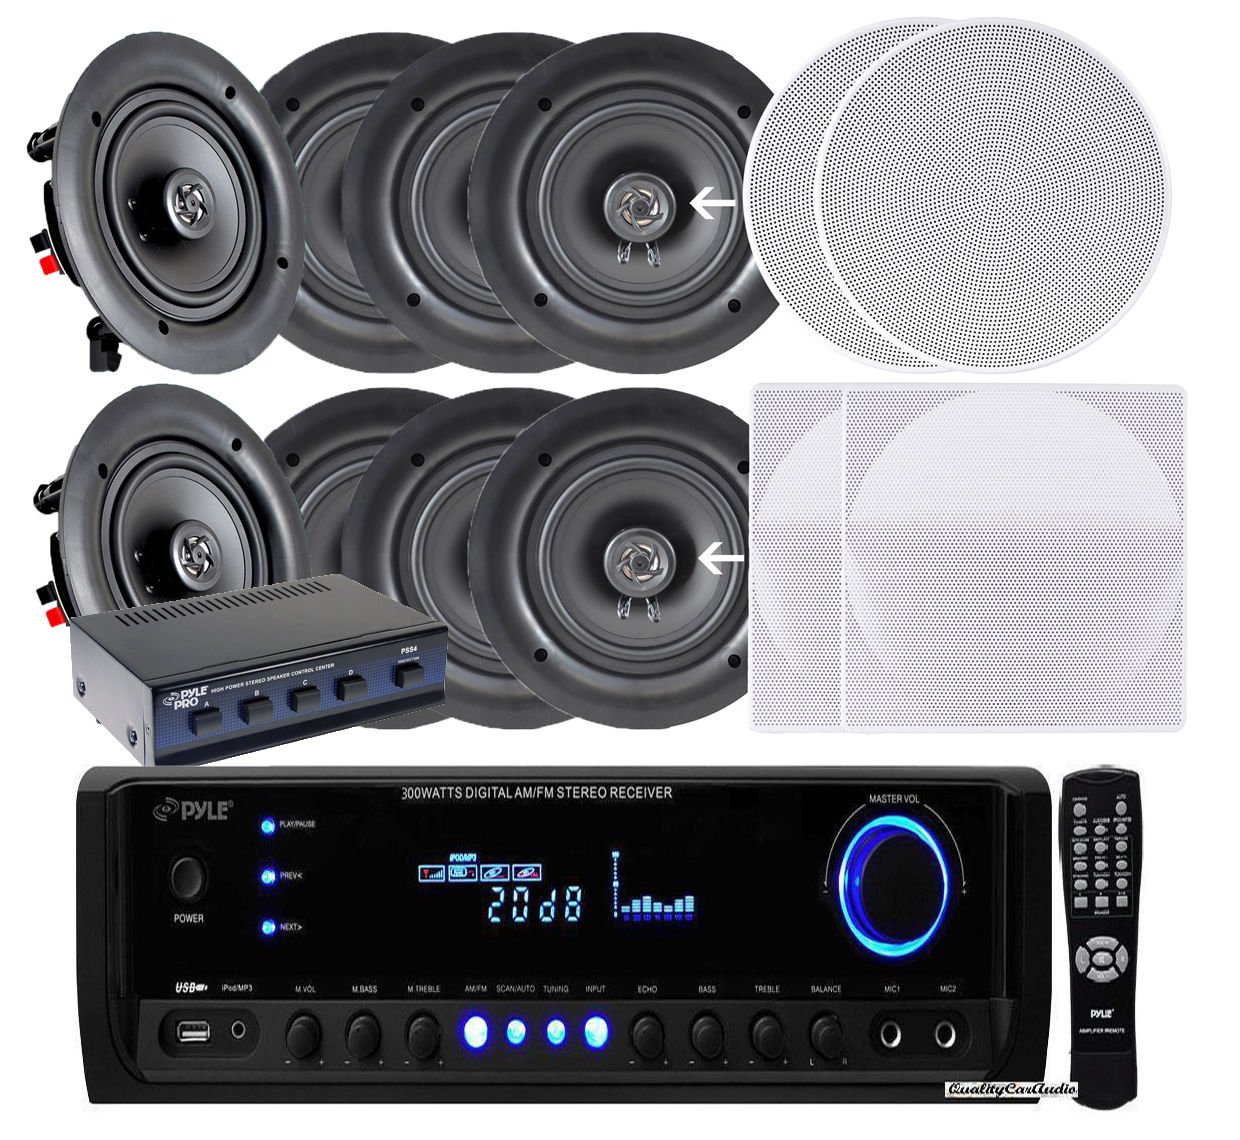 Pyle KTHSP390S 4 Pairs of 150W 5.25'' In-Wall / In-Ceiling Stereo White Speakers w/ 300W Digital Home Stereo Receiver w/ USB/SD/AUX Input, Remote w/ 4 Channel High Power Stereo Speaker Selector by Pyle